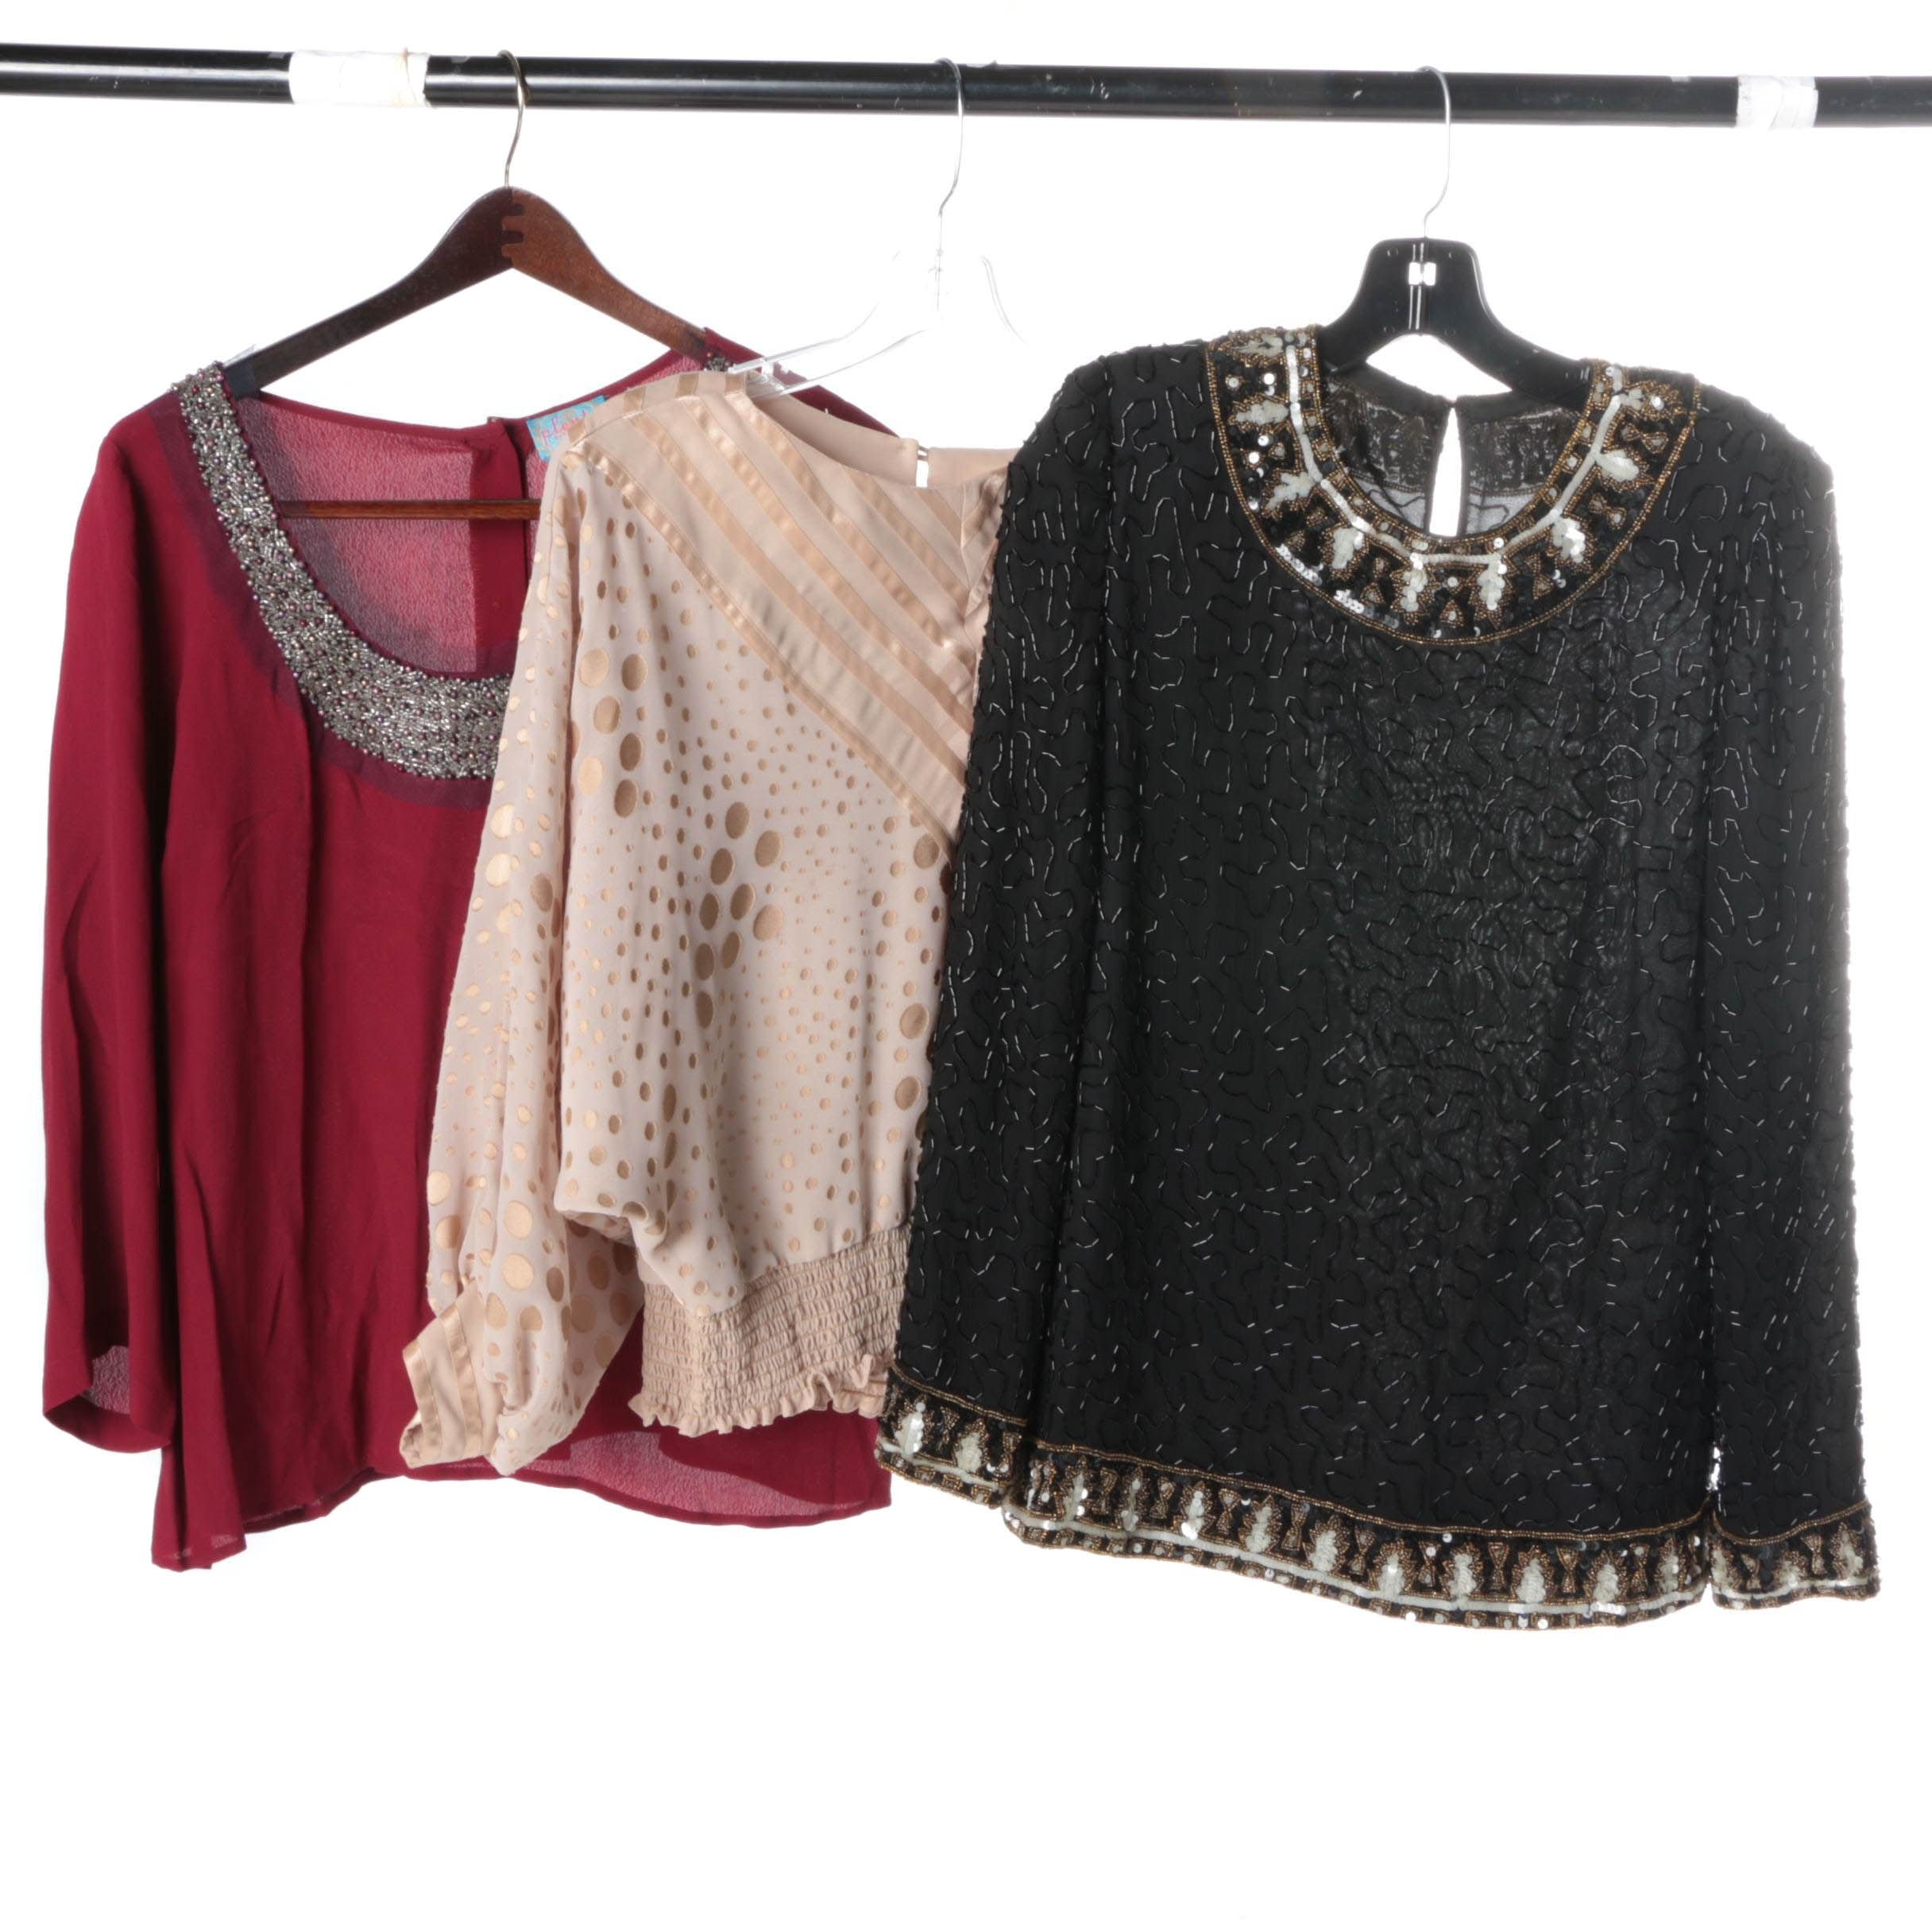 Women's Evening Tops Including Plenty by Tracy Reese